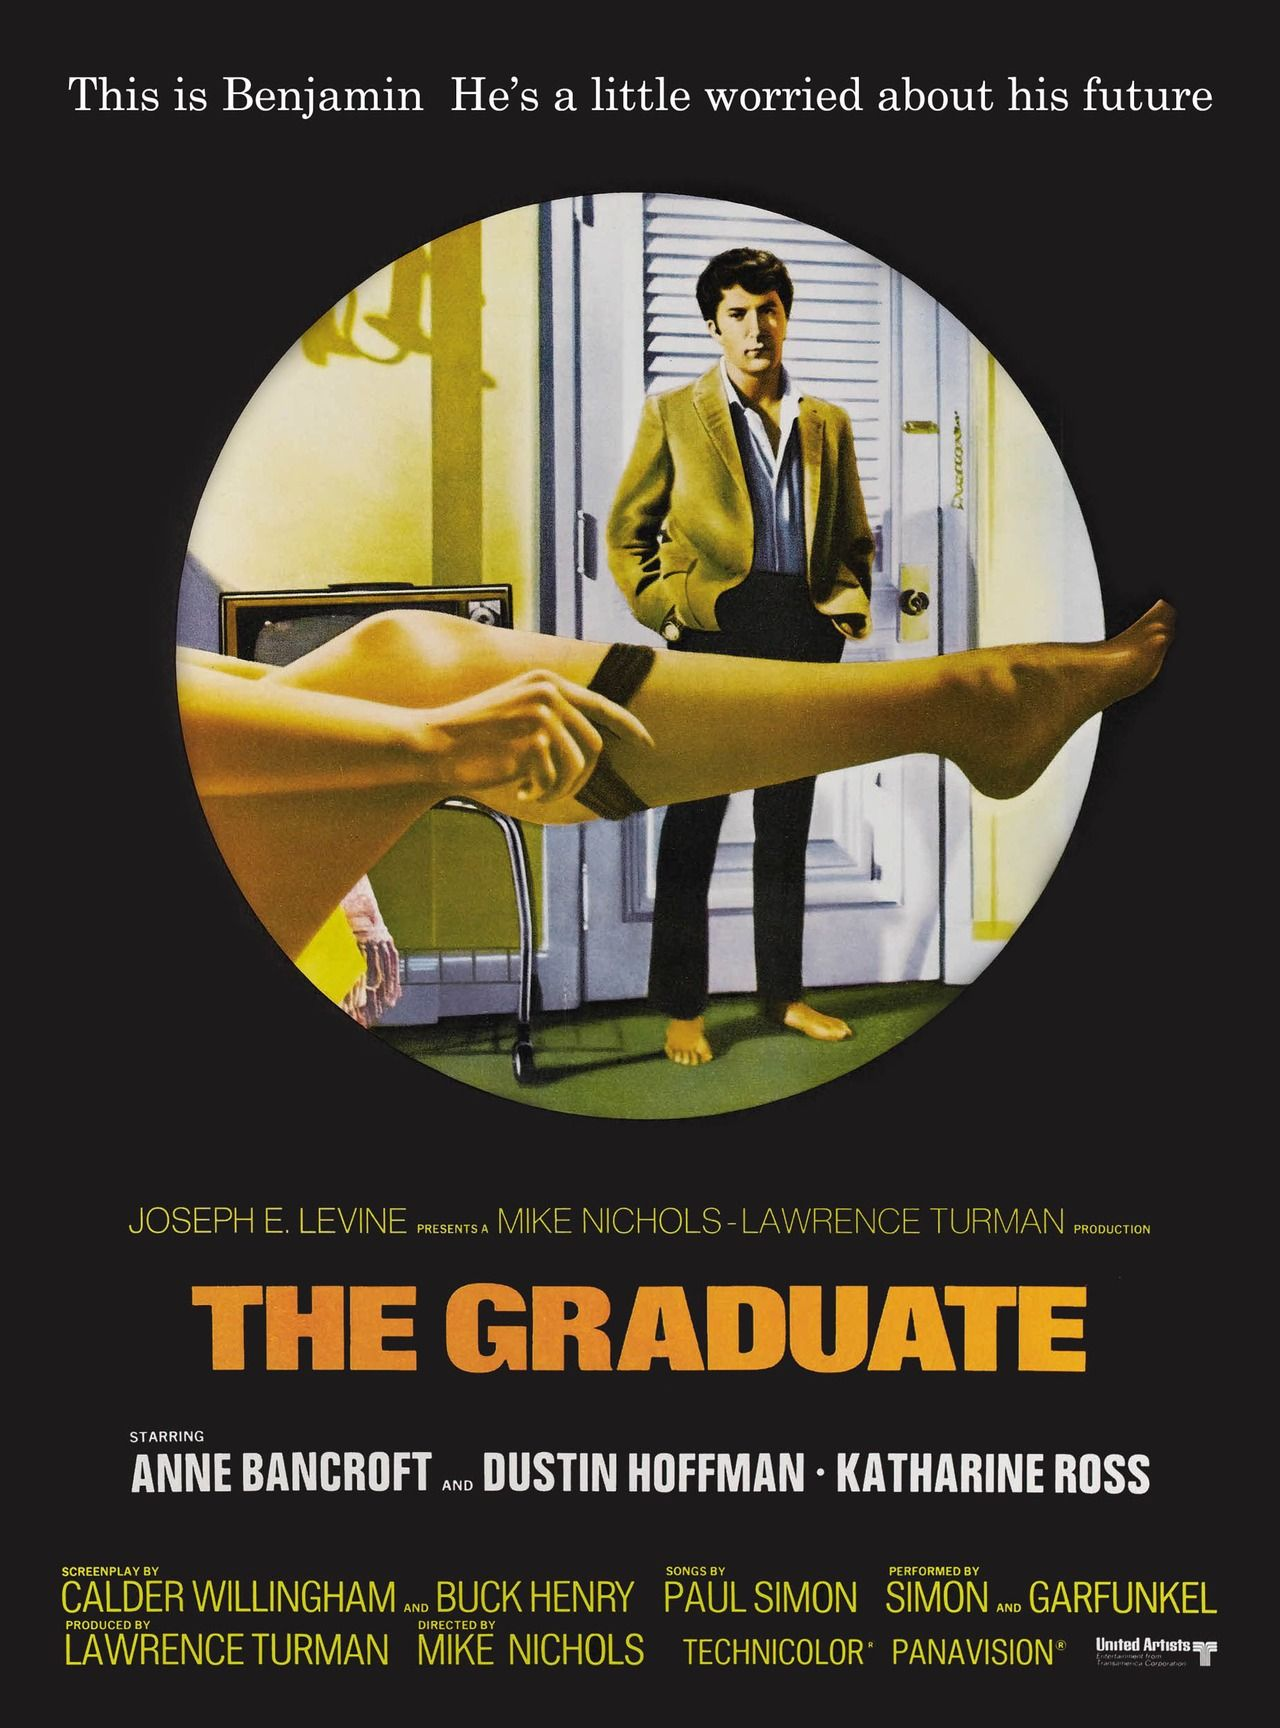 a review of the graduate a film by mike nichols What makes a successful film adaptation of a stage play  dvd review: 'the graduate' remains  'the graduate' director mike nichols celebrated in new pbs .